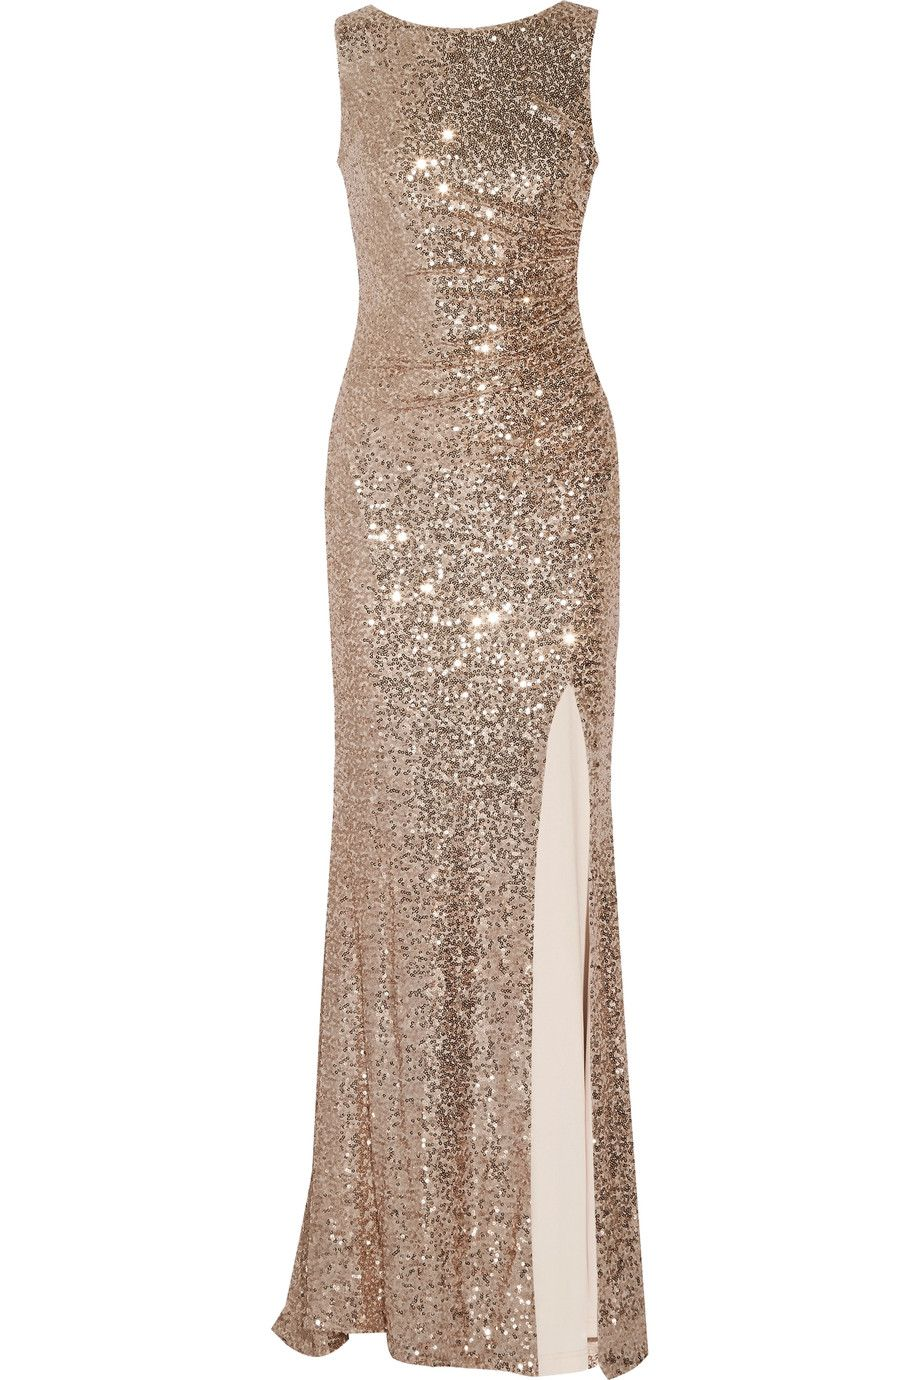 Shop on-sale Badgley Mischka Draped sequined tulle gown. Browse ...